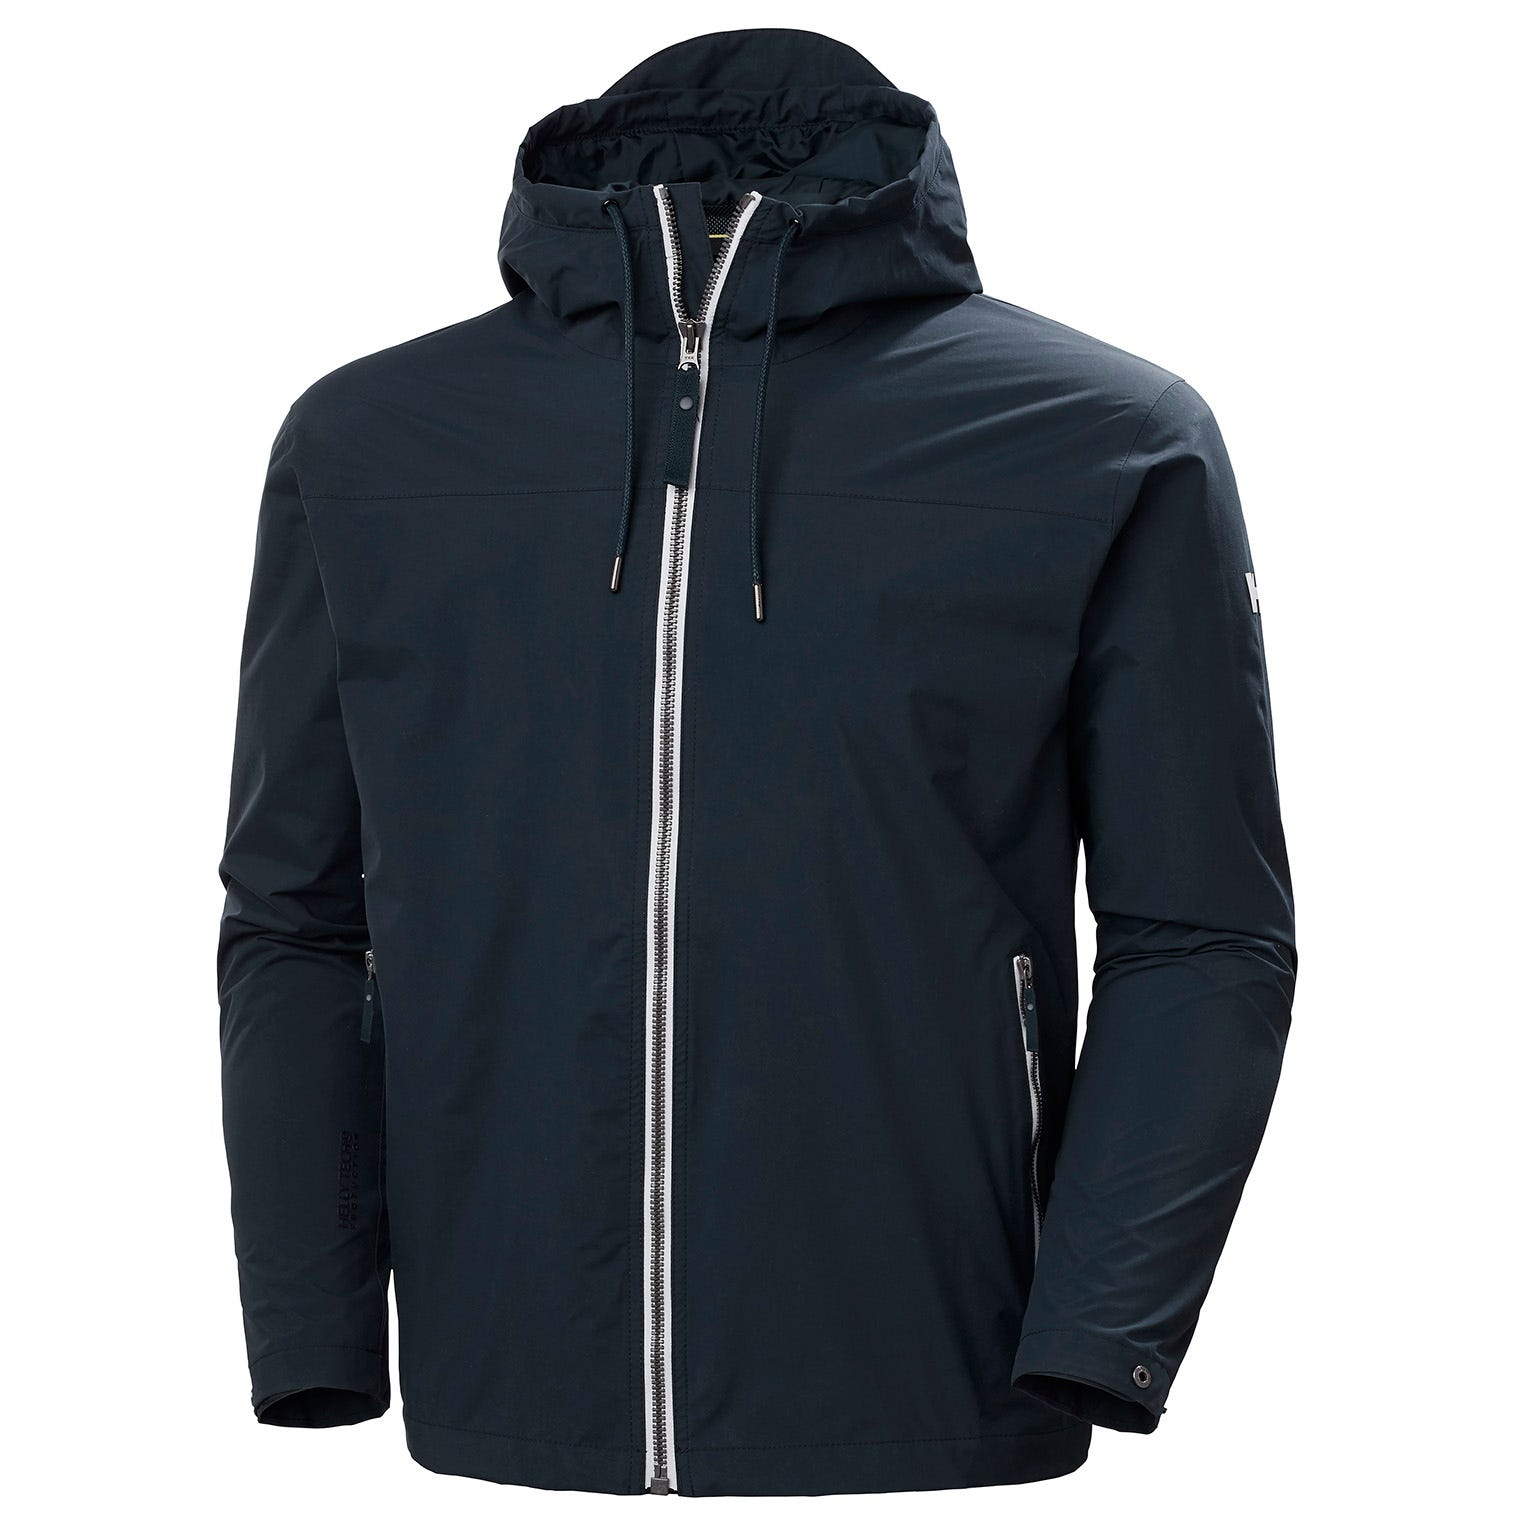 Urban Rain Jacket | Breathable For Summer Days Gb Helly Hansen Mens Navy L